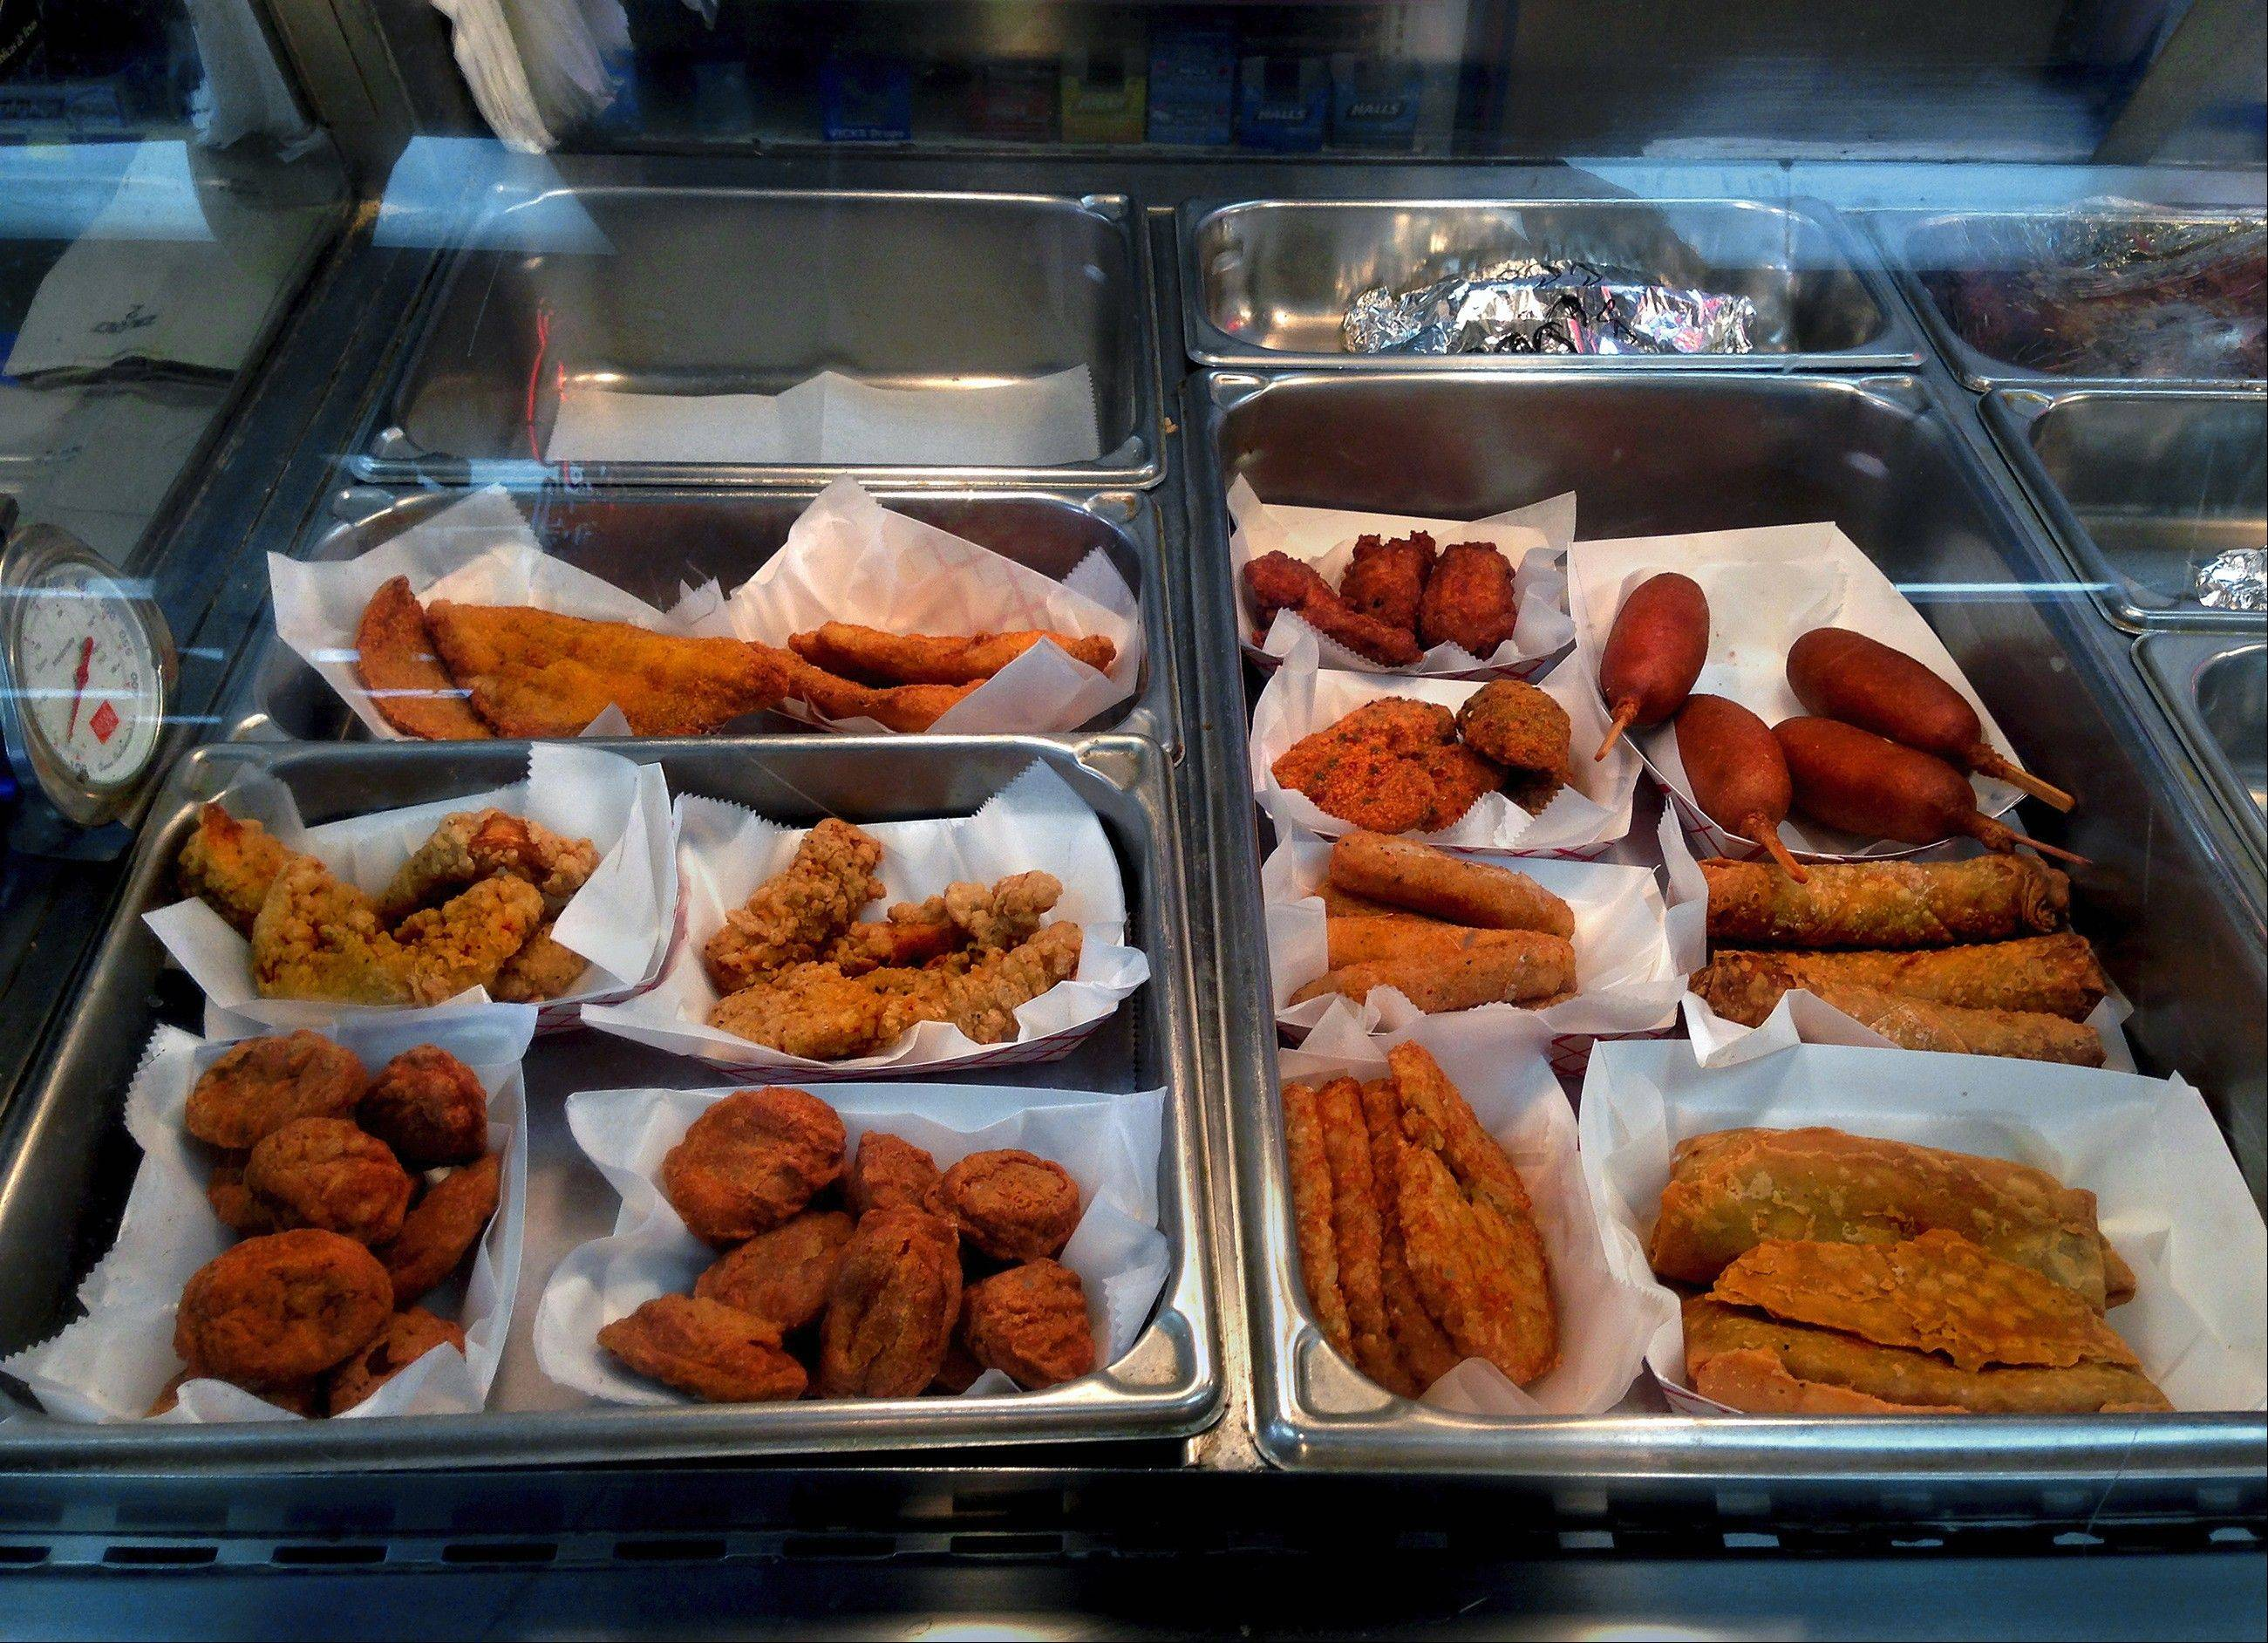 At some restaurants and food stores in McAllen, Texas, every item offered is fried.